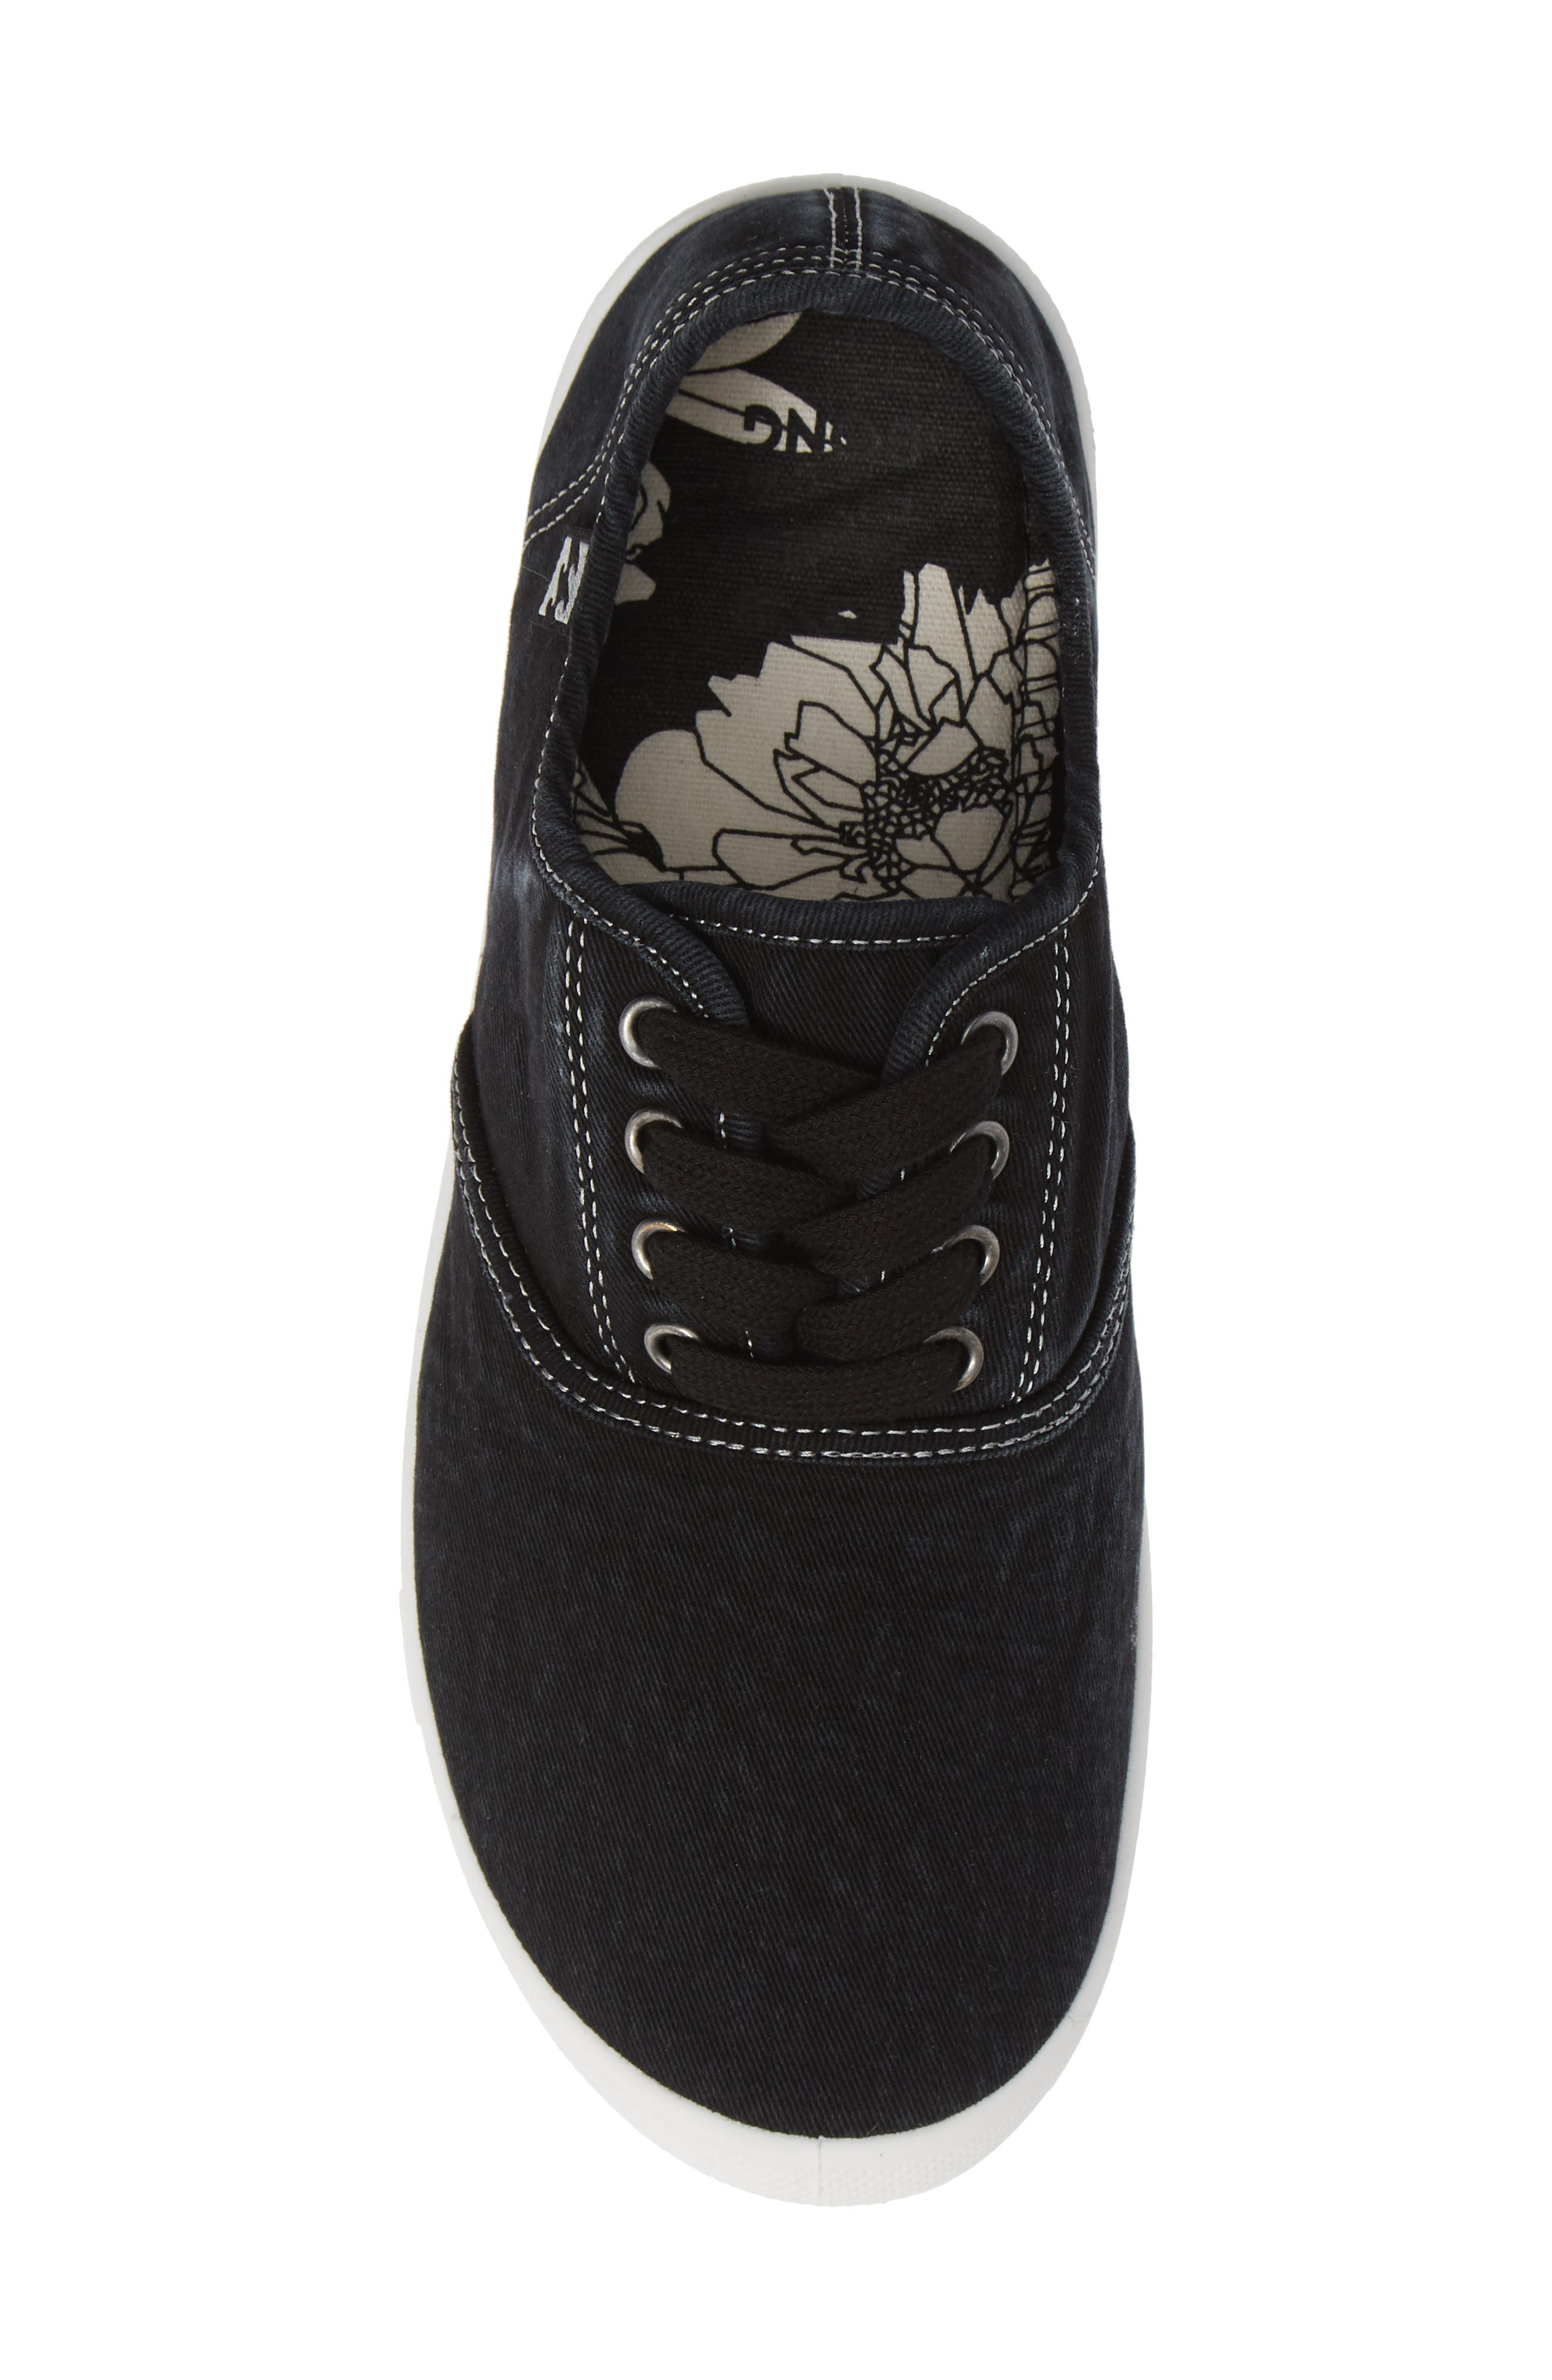 Addy Sneaker,                             Alternate thumbnail 5, color,                             OFF BLACK